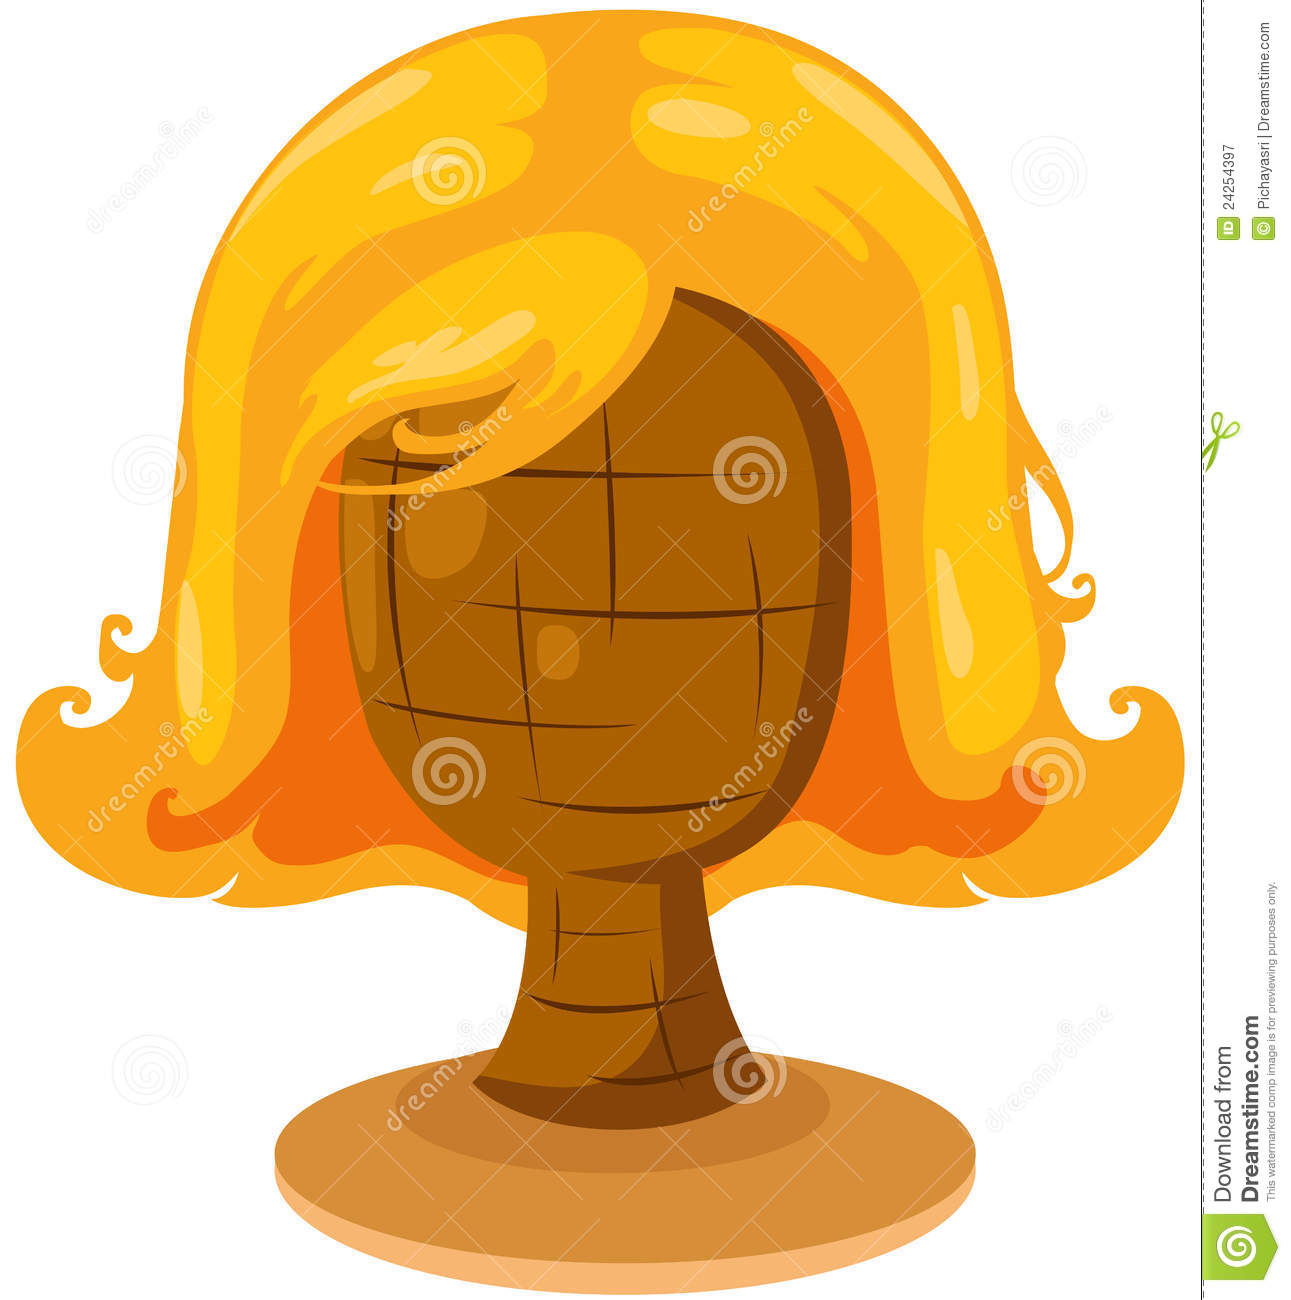 Blonde Wig Clipart - Clipart Kid